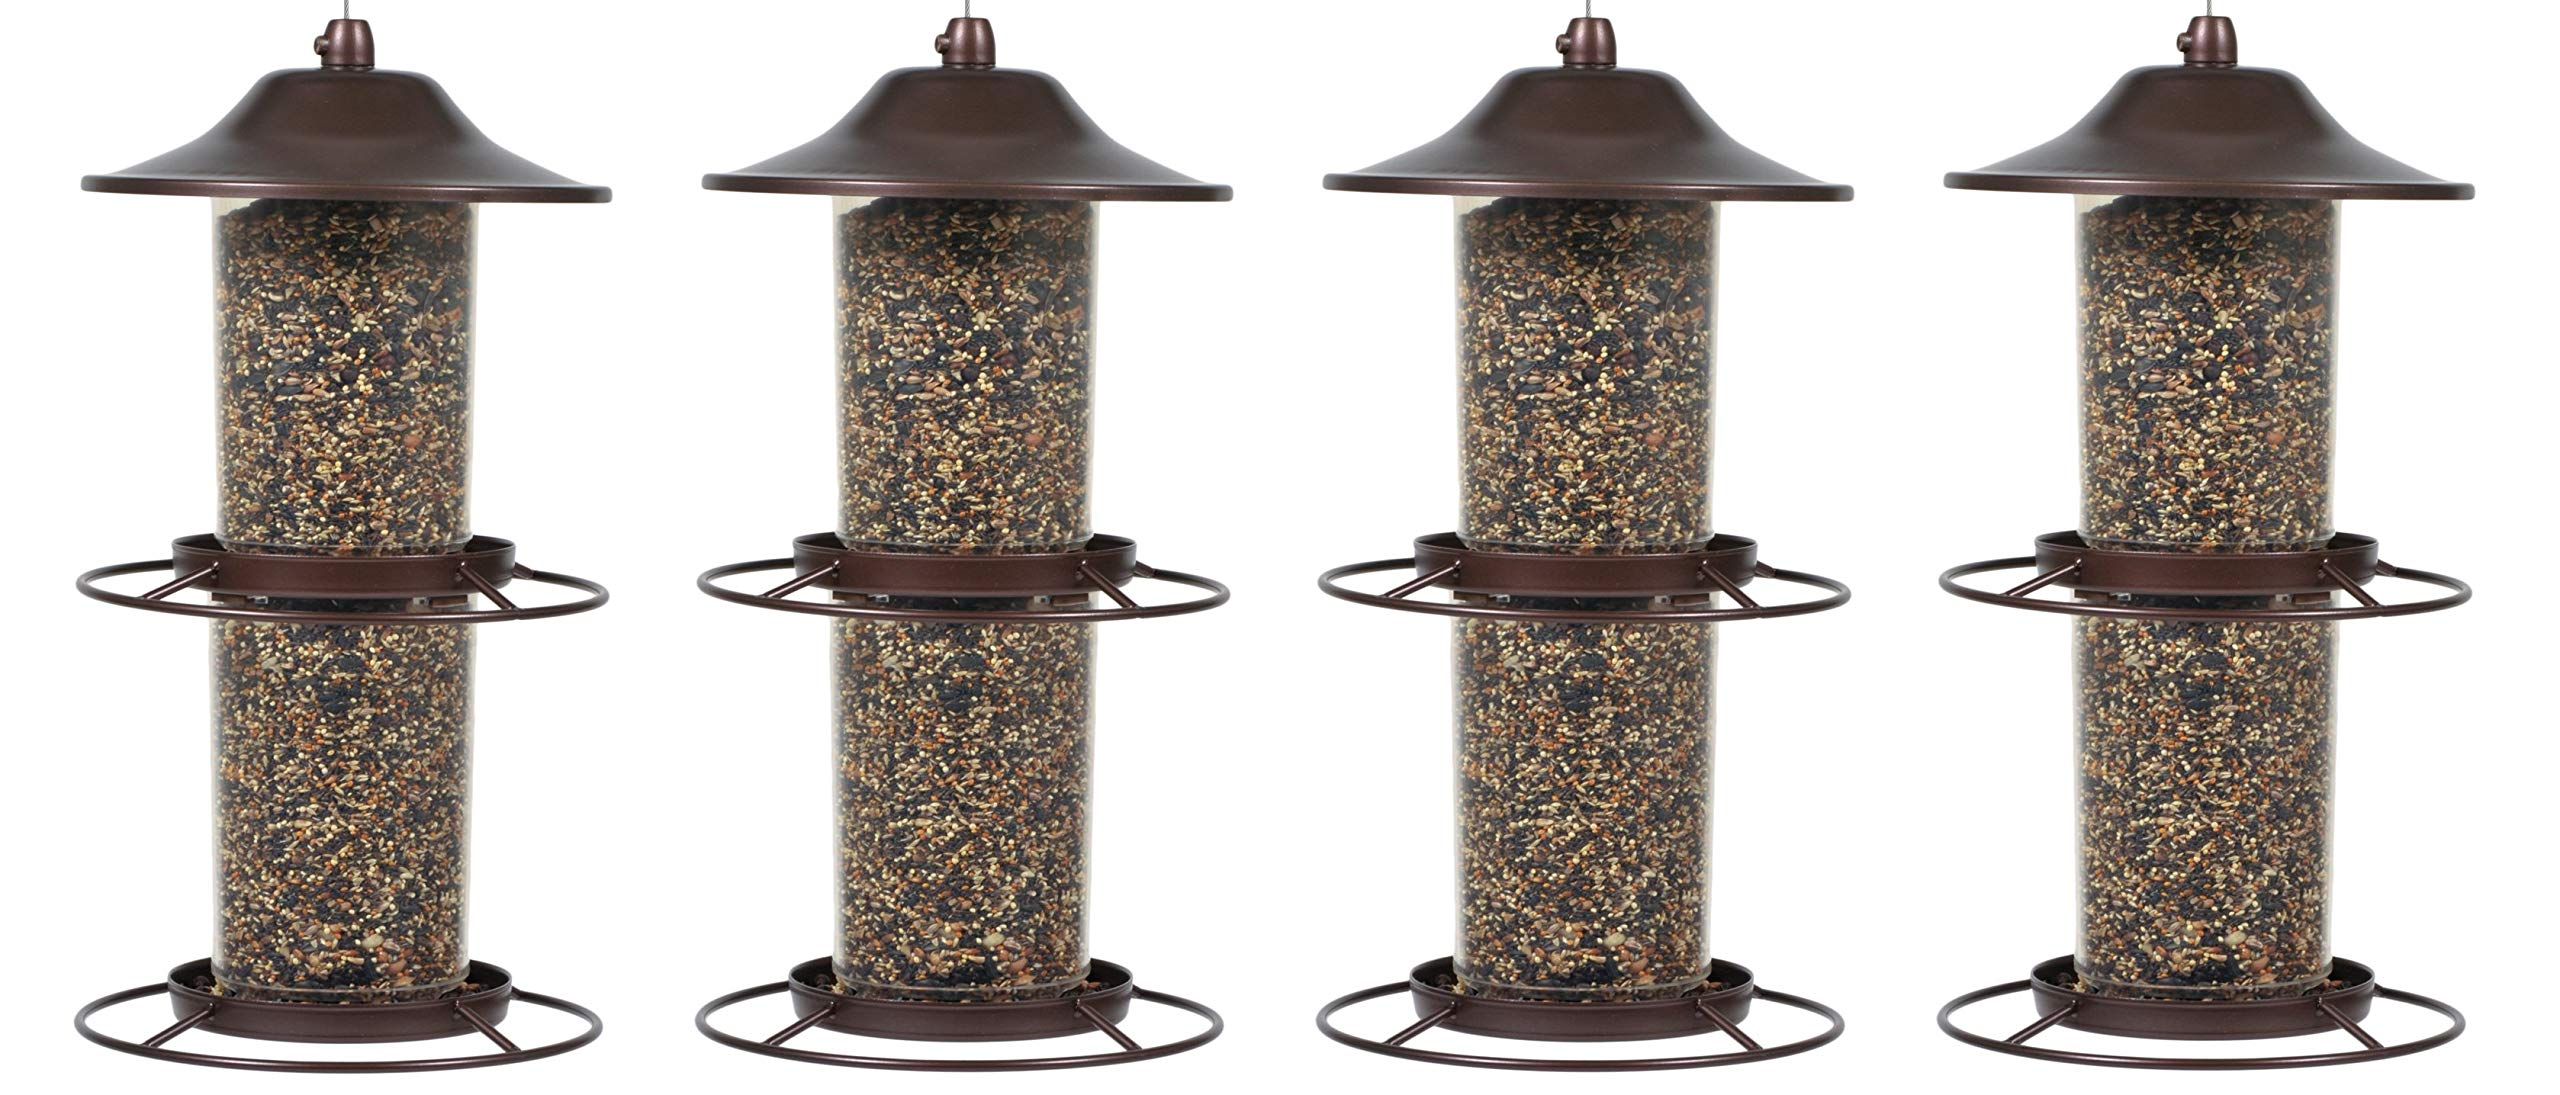 Perky-Pet 325S Panorama Bird Feeder (Pack of 4)